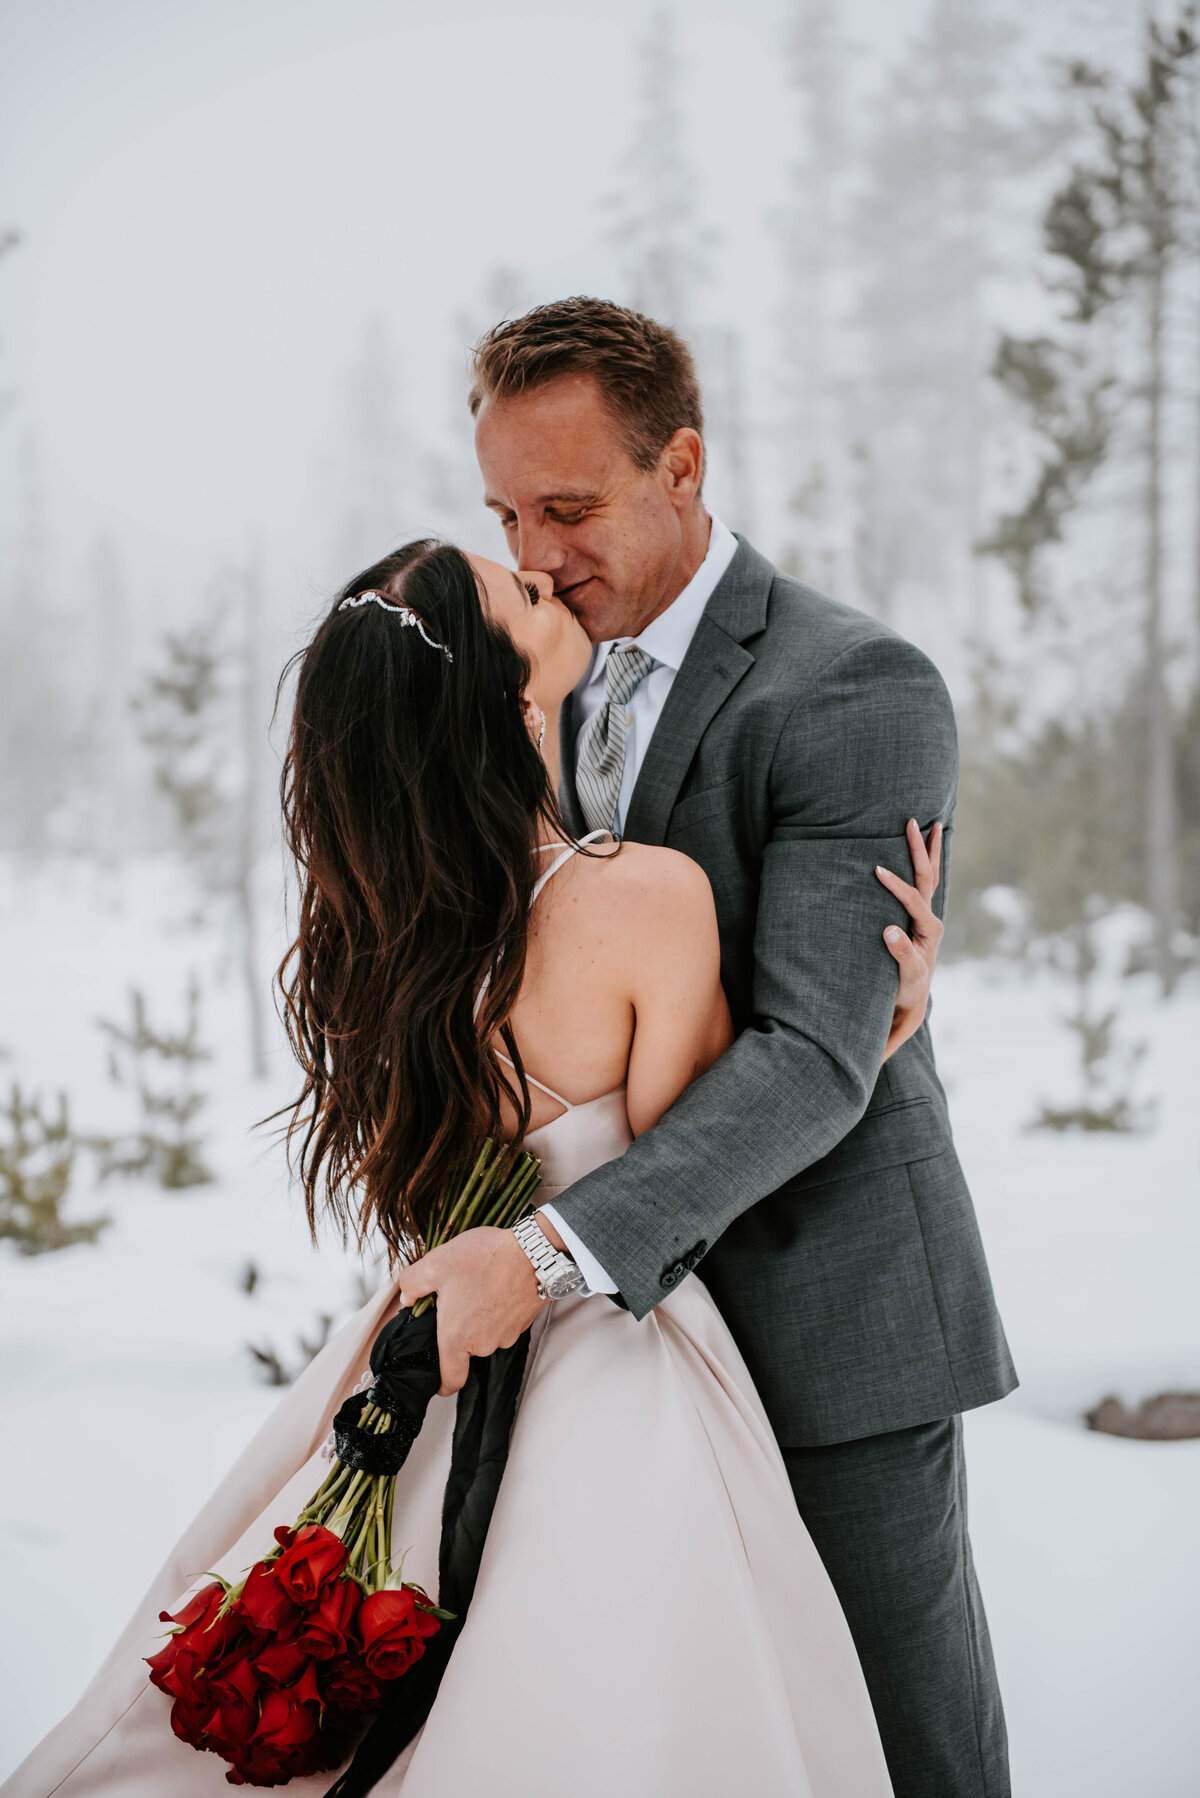 mt-bachelor-snow-winter-elopement-bend-oregon-wedding-photographer-2294